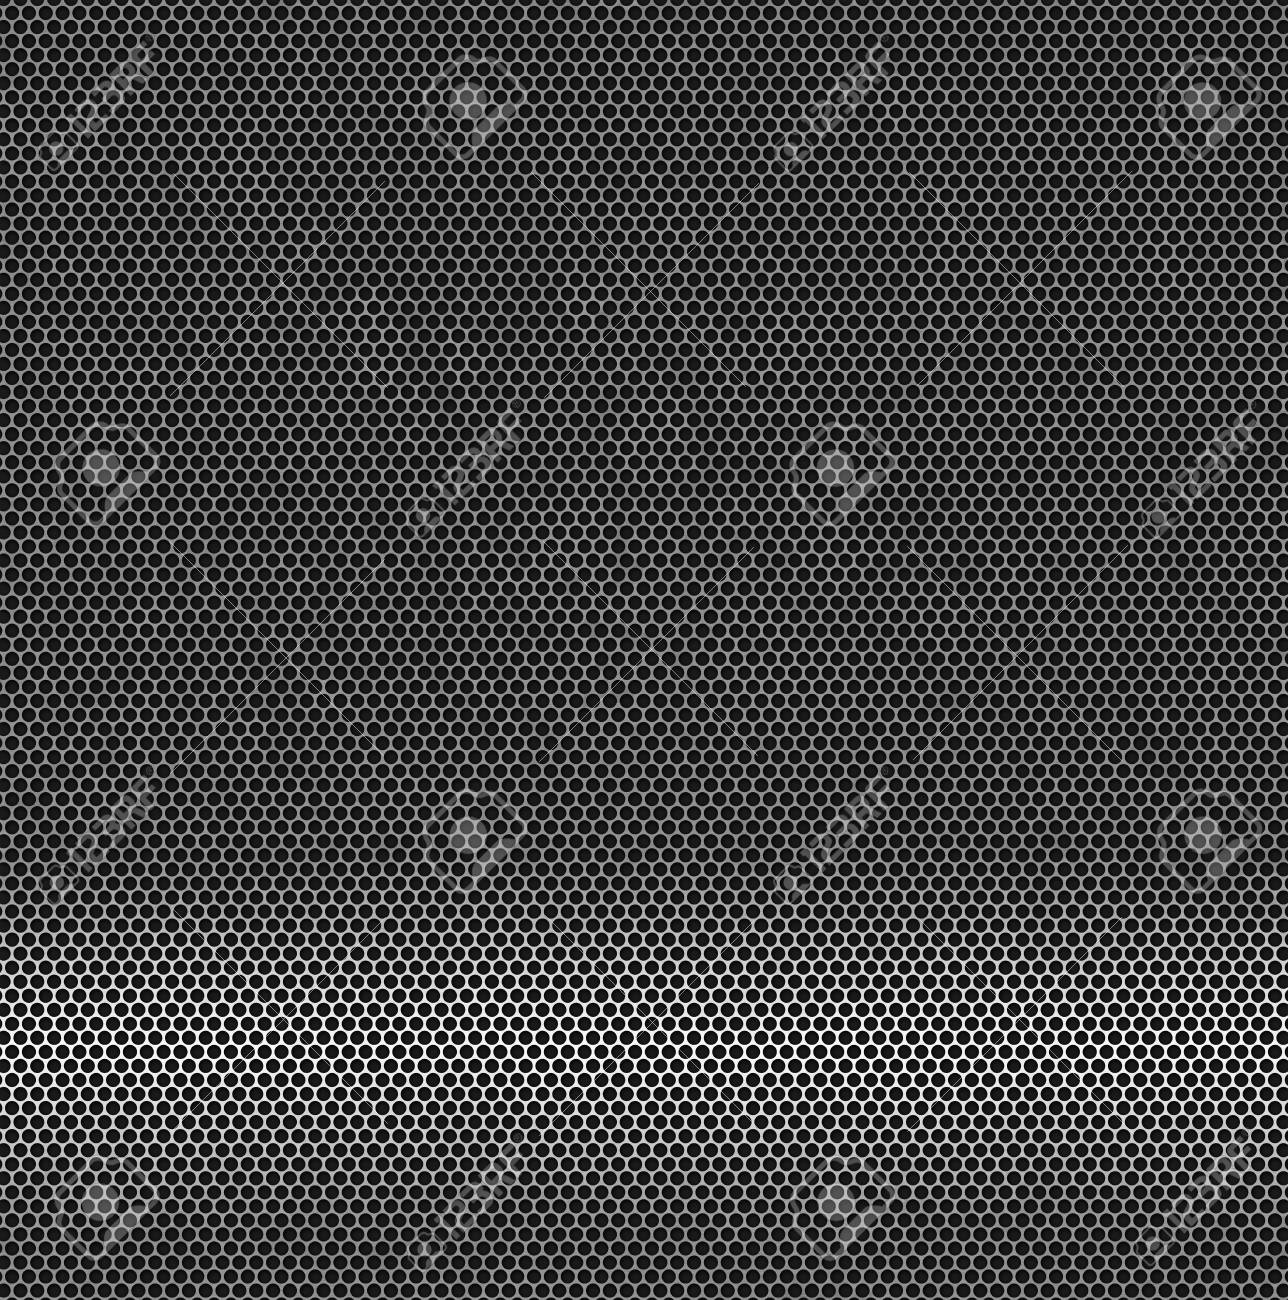 Abstract background - a metal surface with holes Stock Photo - 7410443